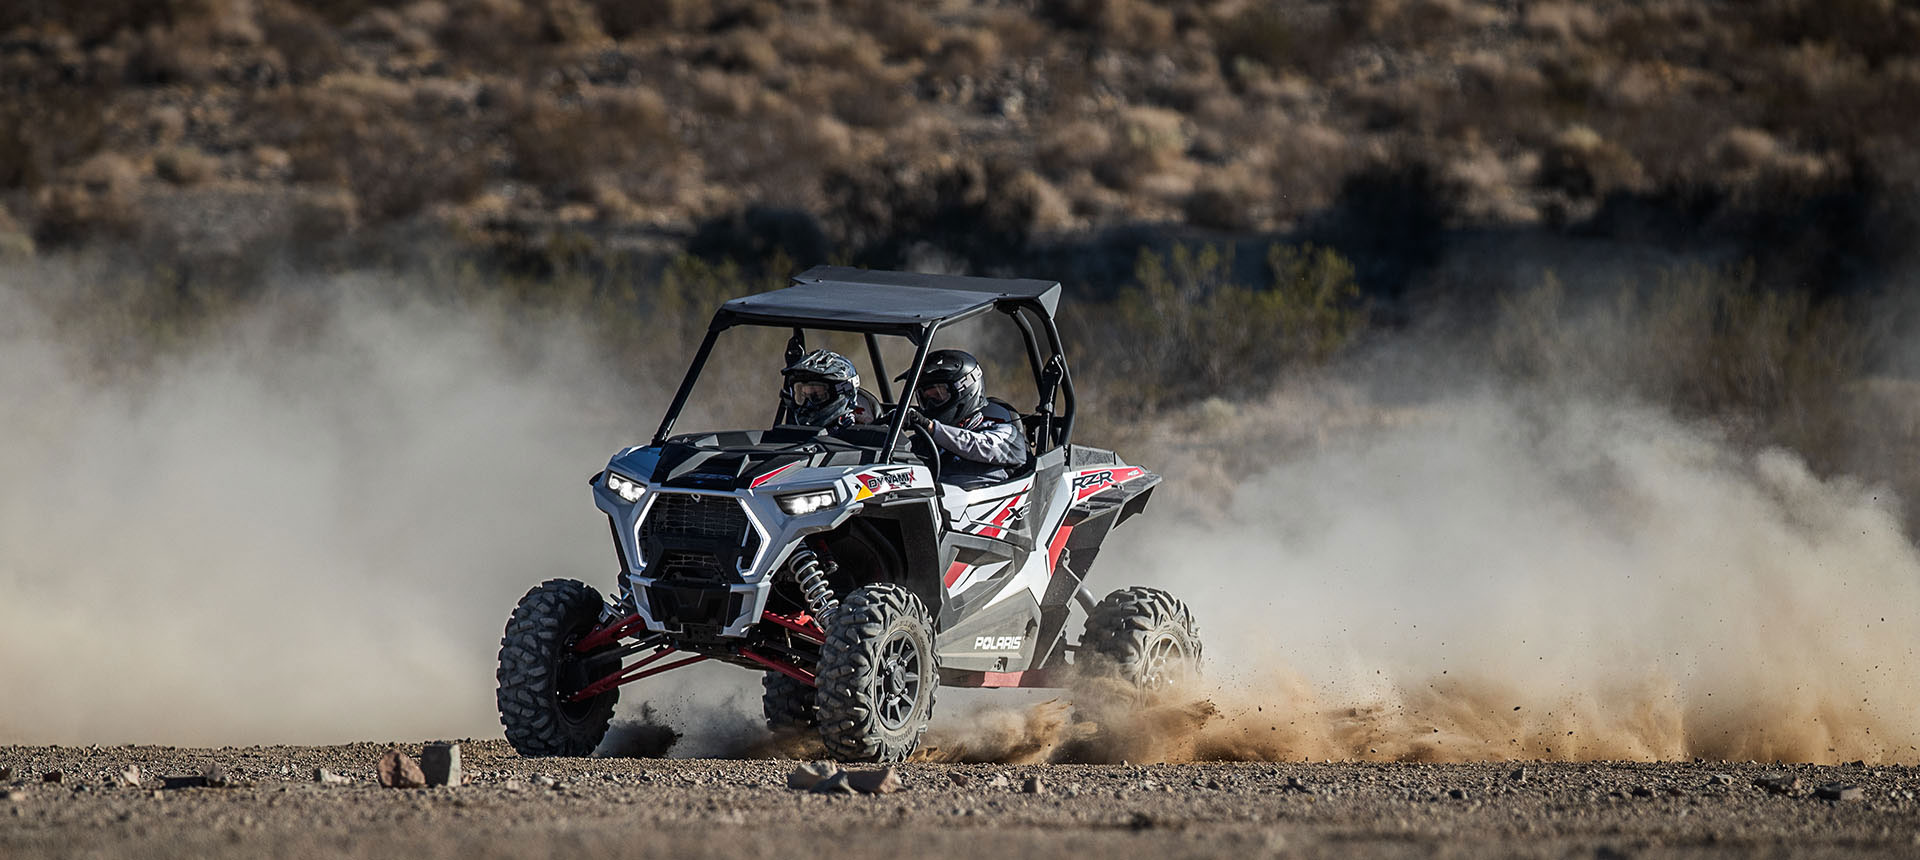 2019 Polaris RZR XP 1000 in Ottumwa, Iowa